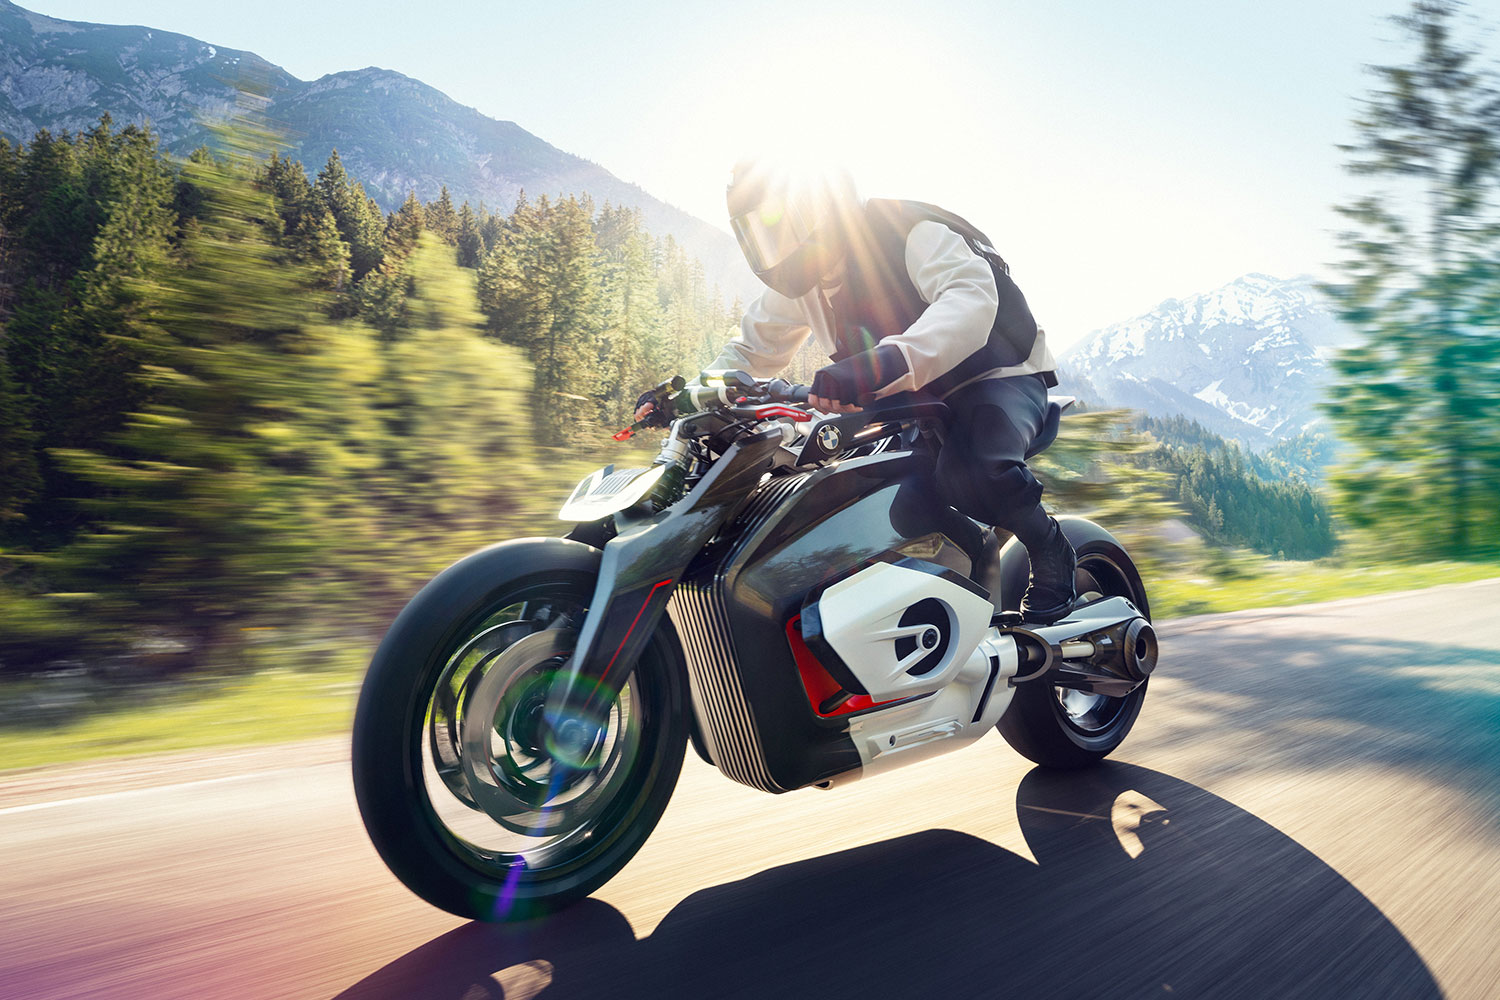 BMW revealed its Vision DC Roadster electric bike concept